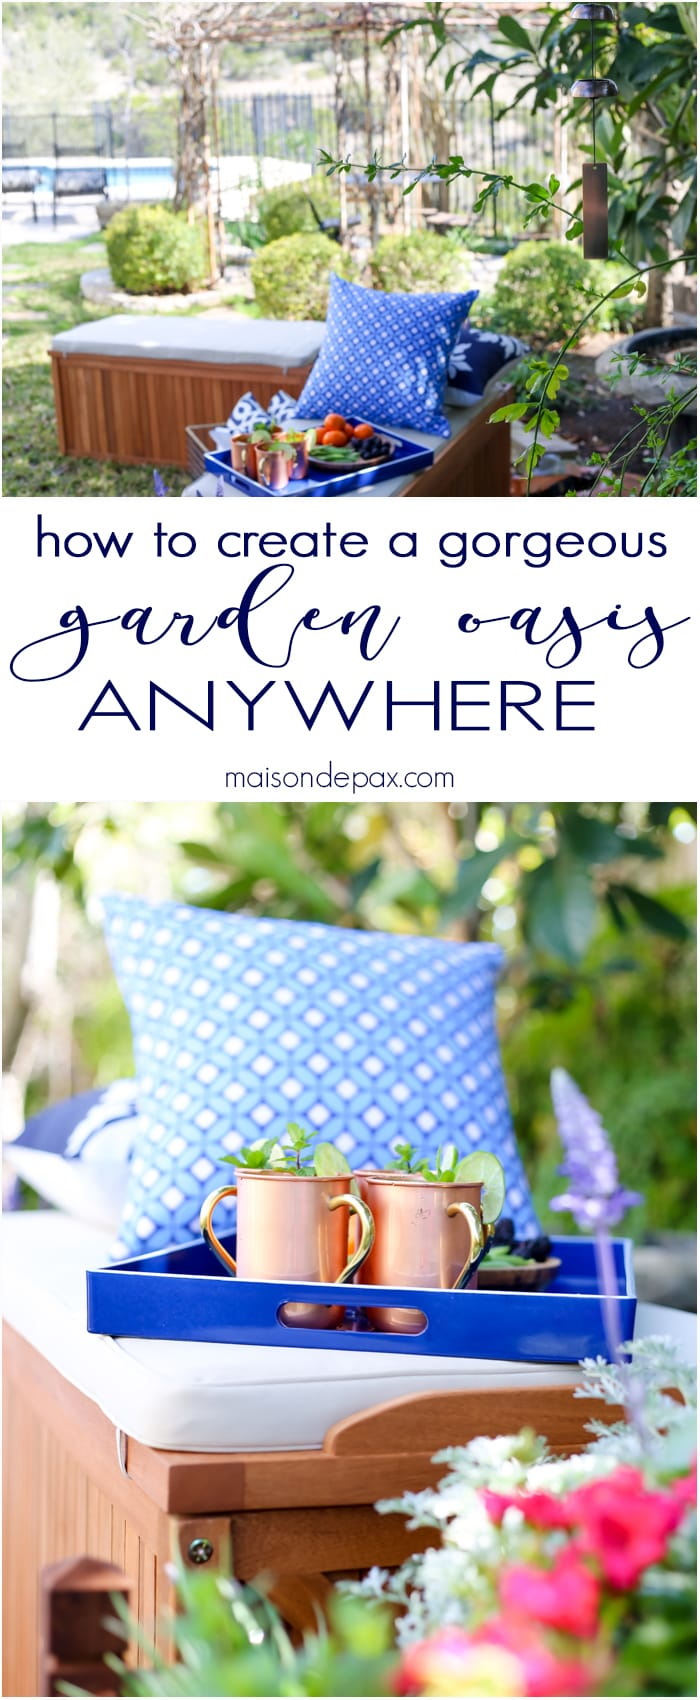 I love this idea! How to create a gorgeous garden oasis anywhere... the best tips for making a perfect outdoor sanctuary | maisondepax.com